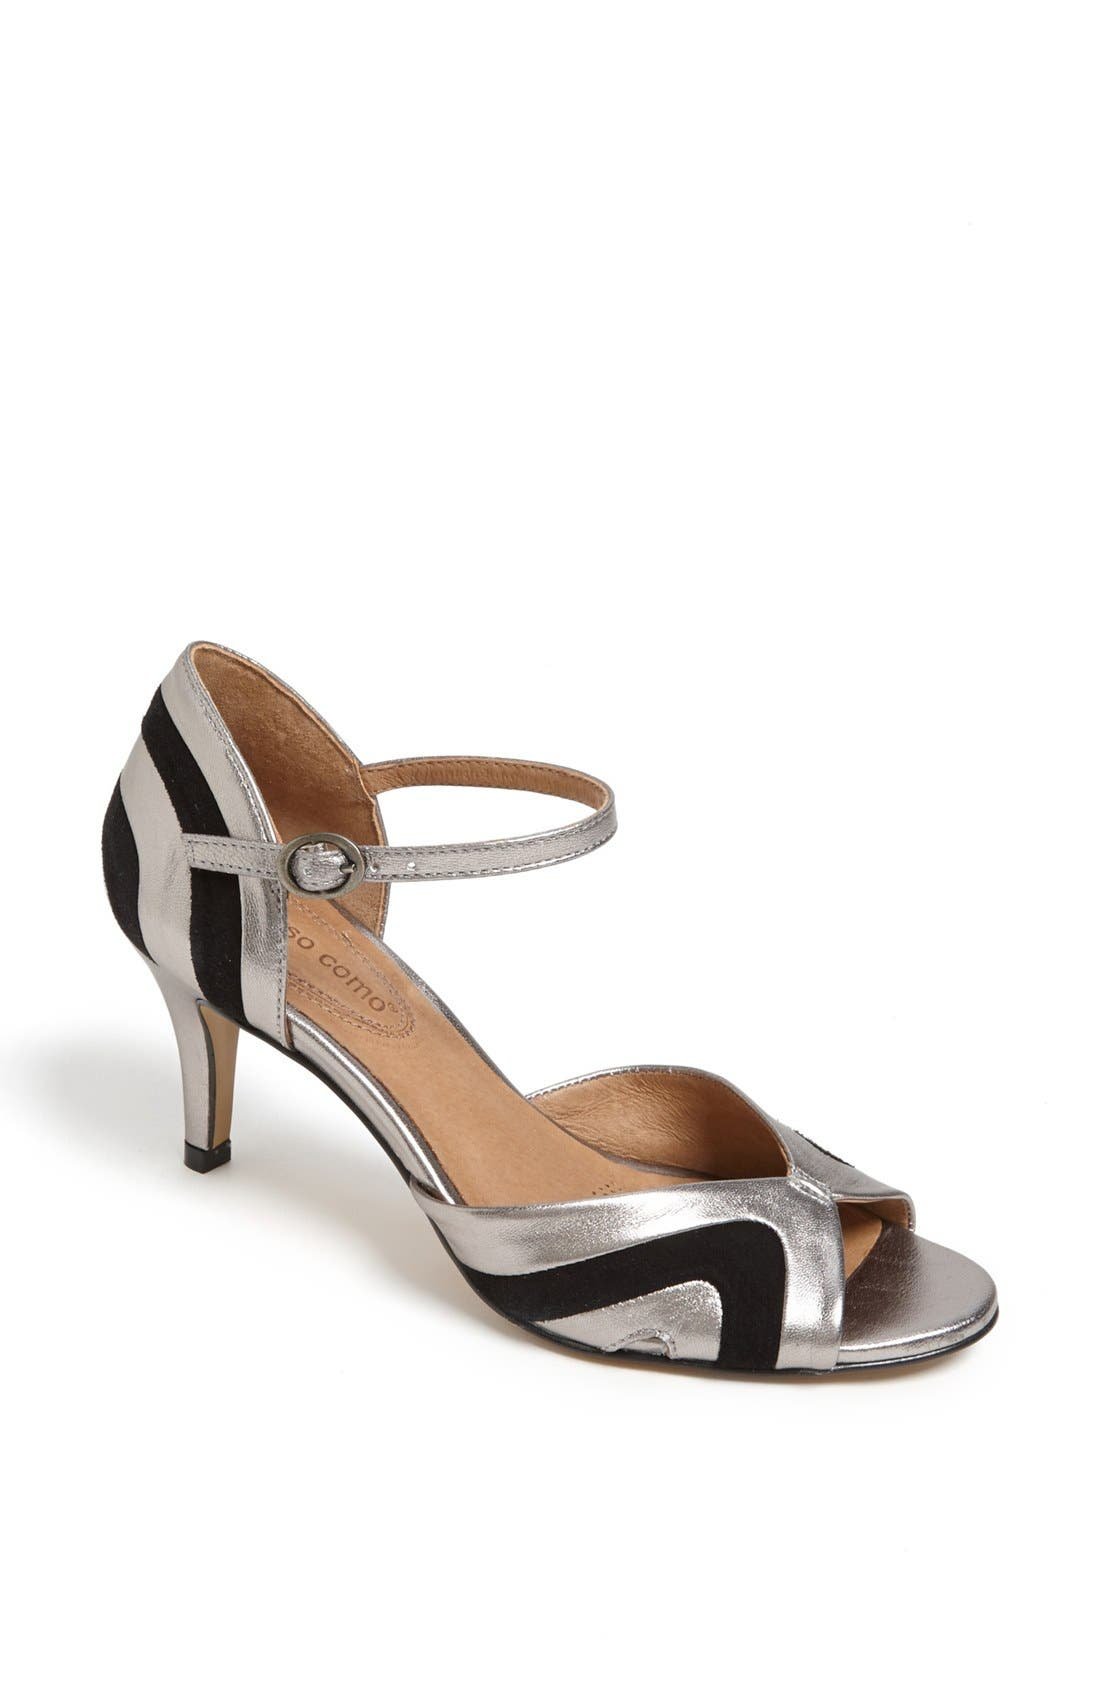 Alternate Image 1 Selected - Corso Como 'Jesuit' Peep Toe Leather Pump